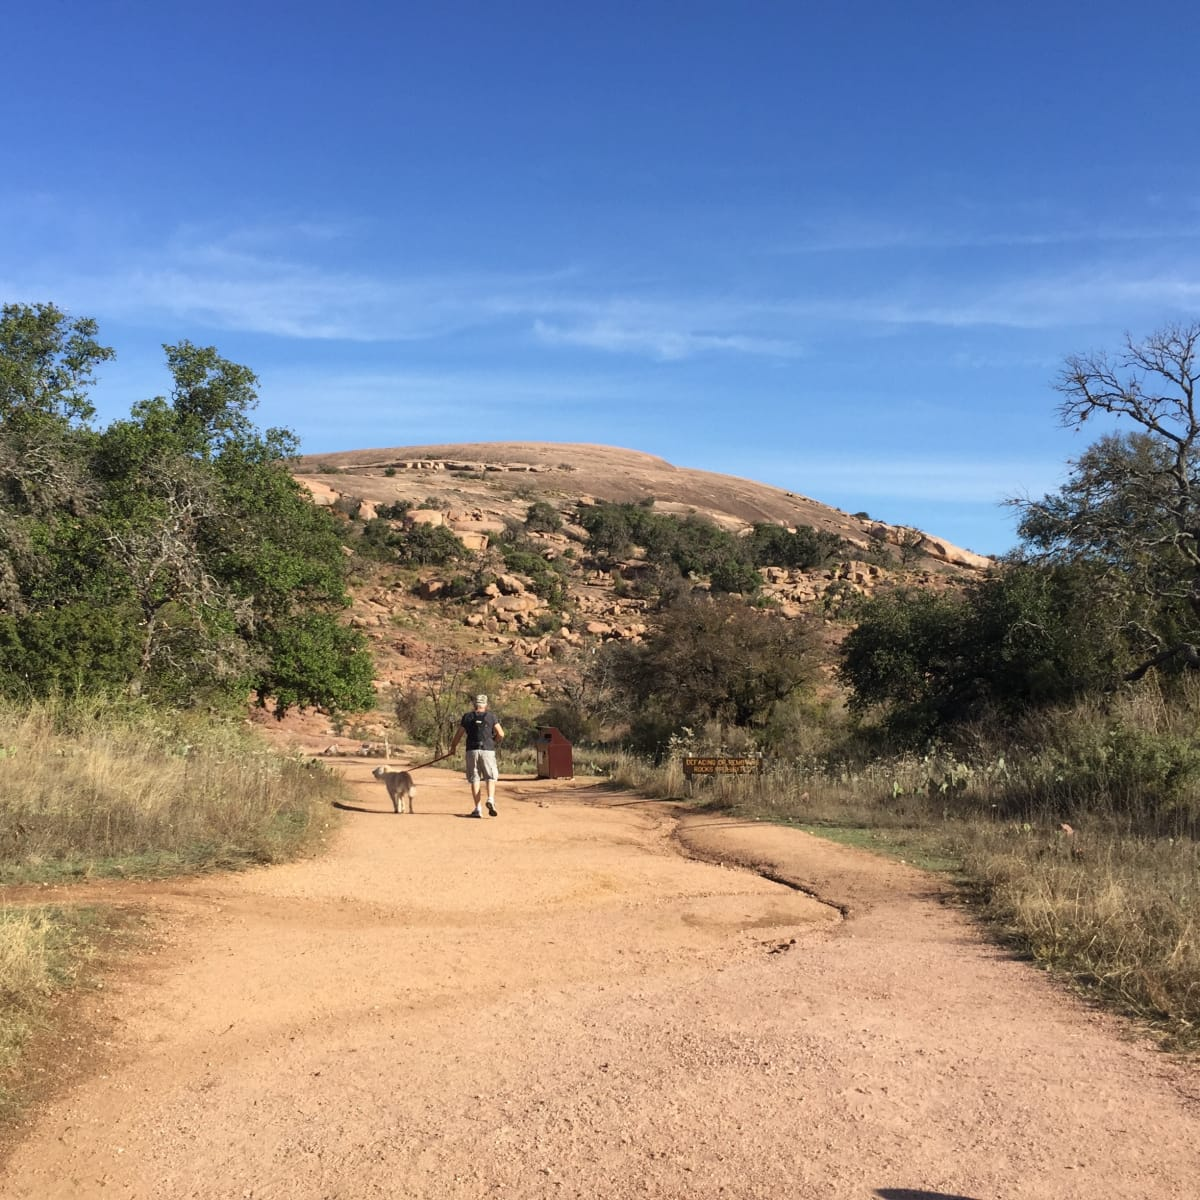 Enchanted Rock looming in the distance